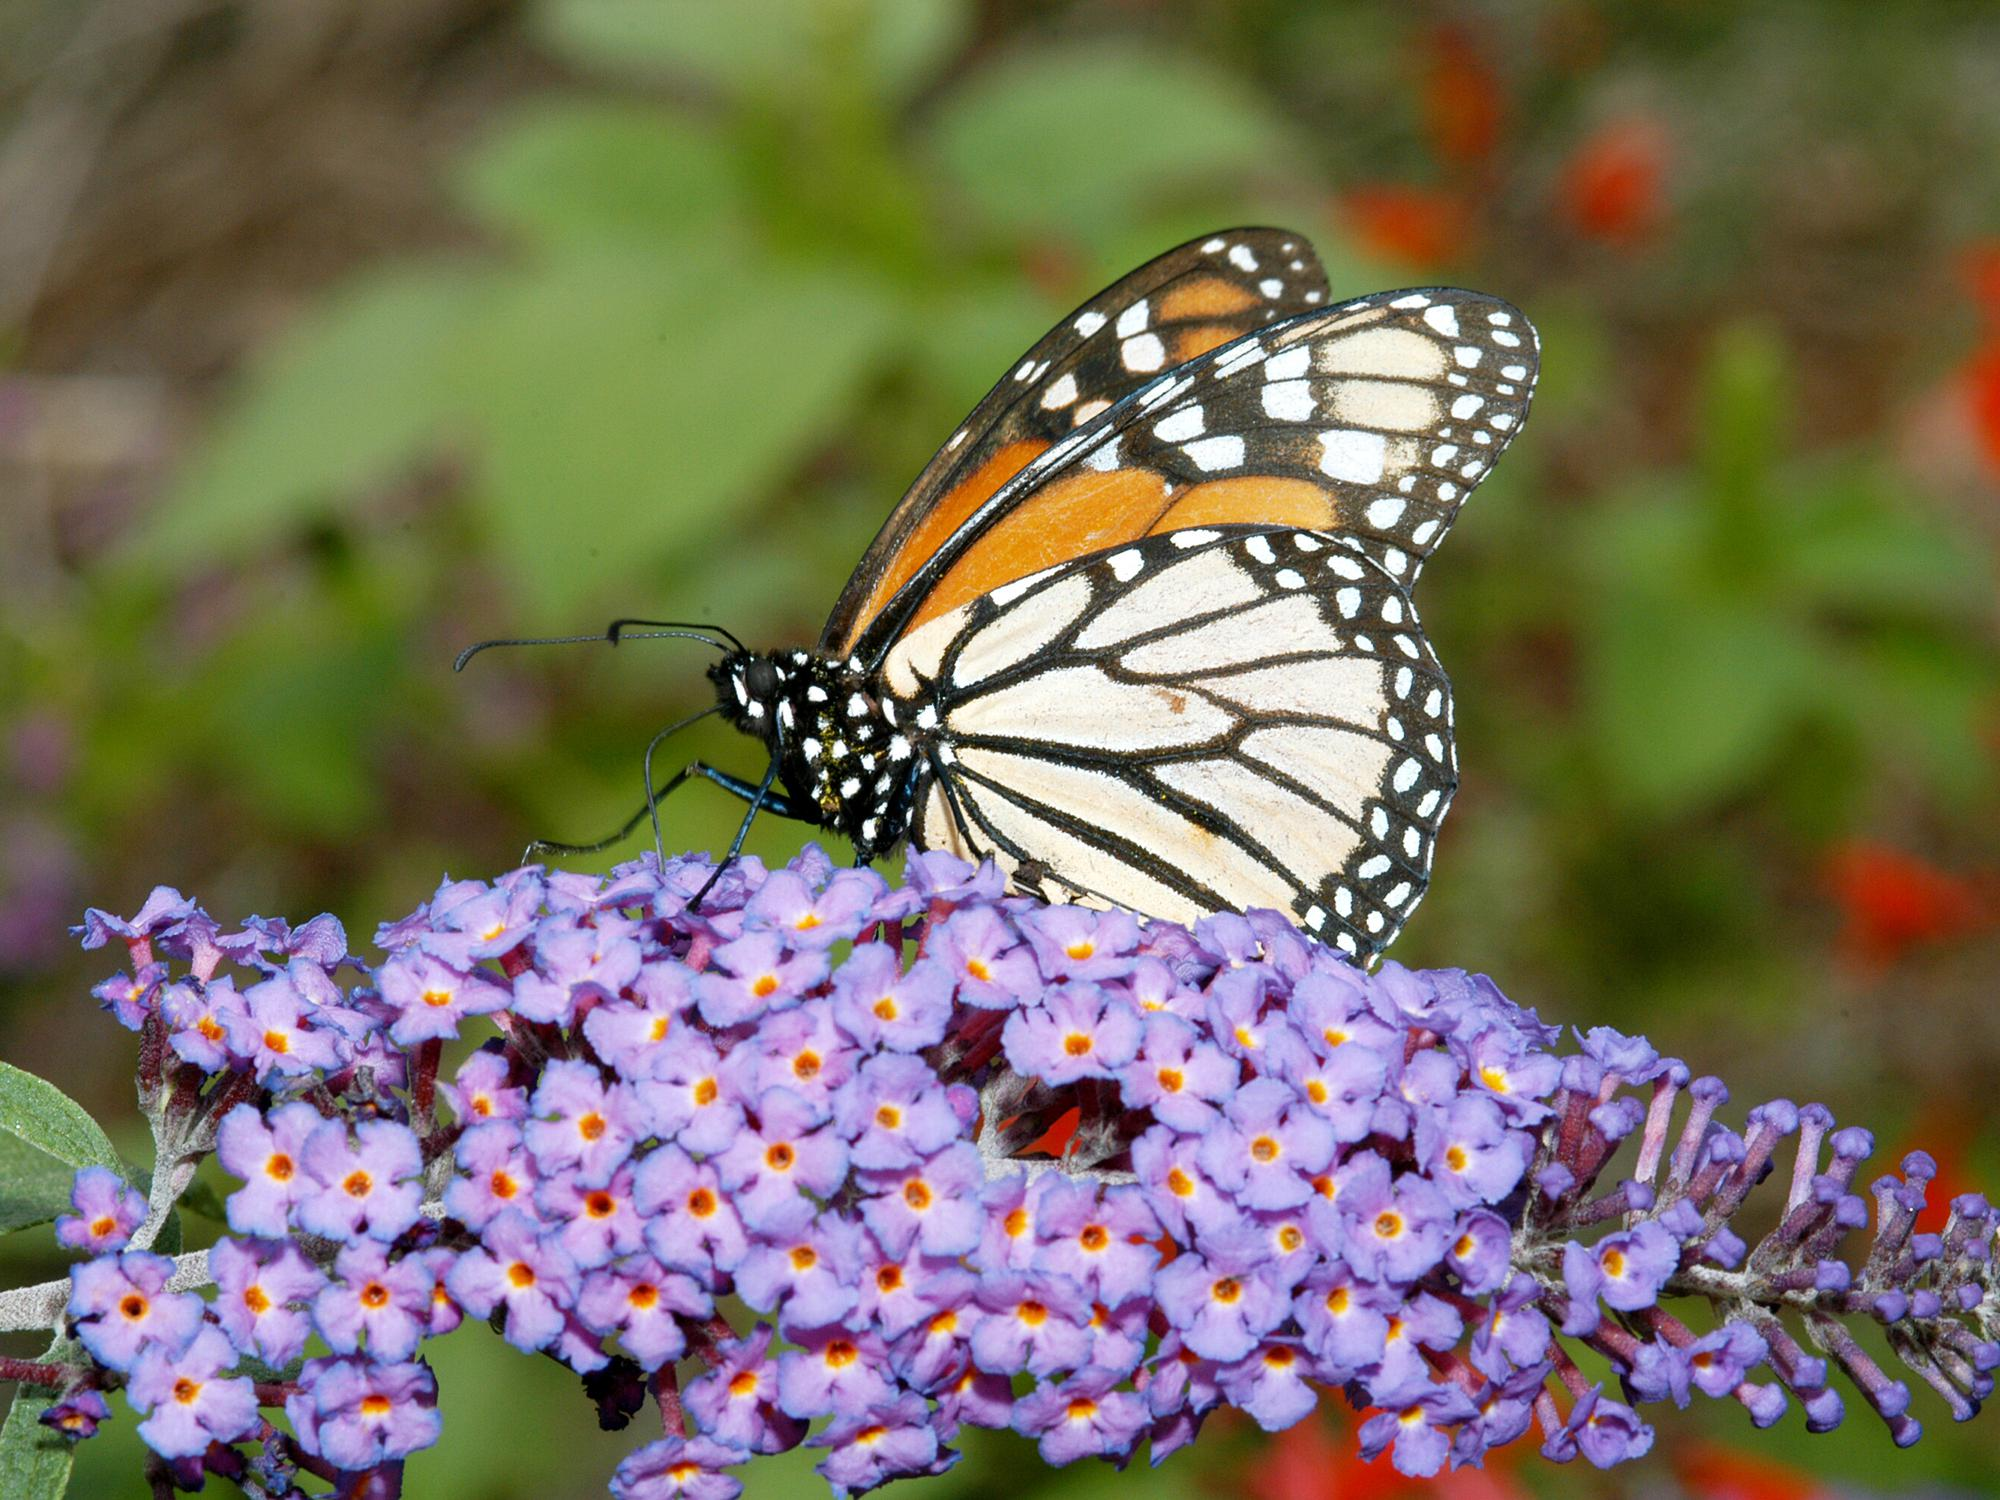 An orange and white Monarch butterfly rests on small purple flowers.